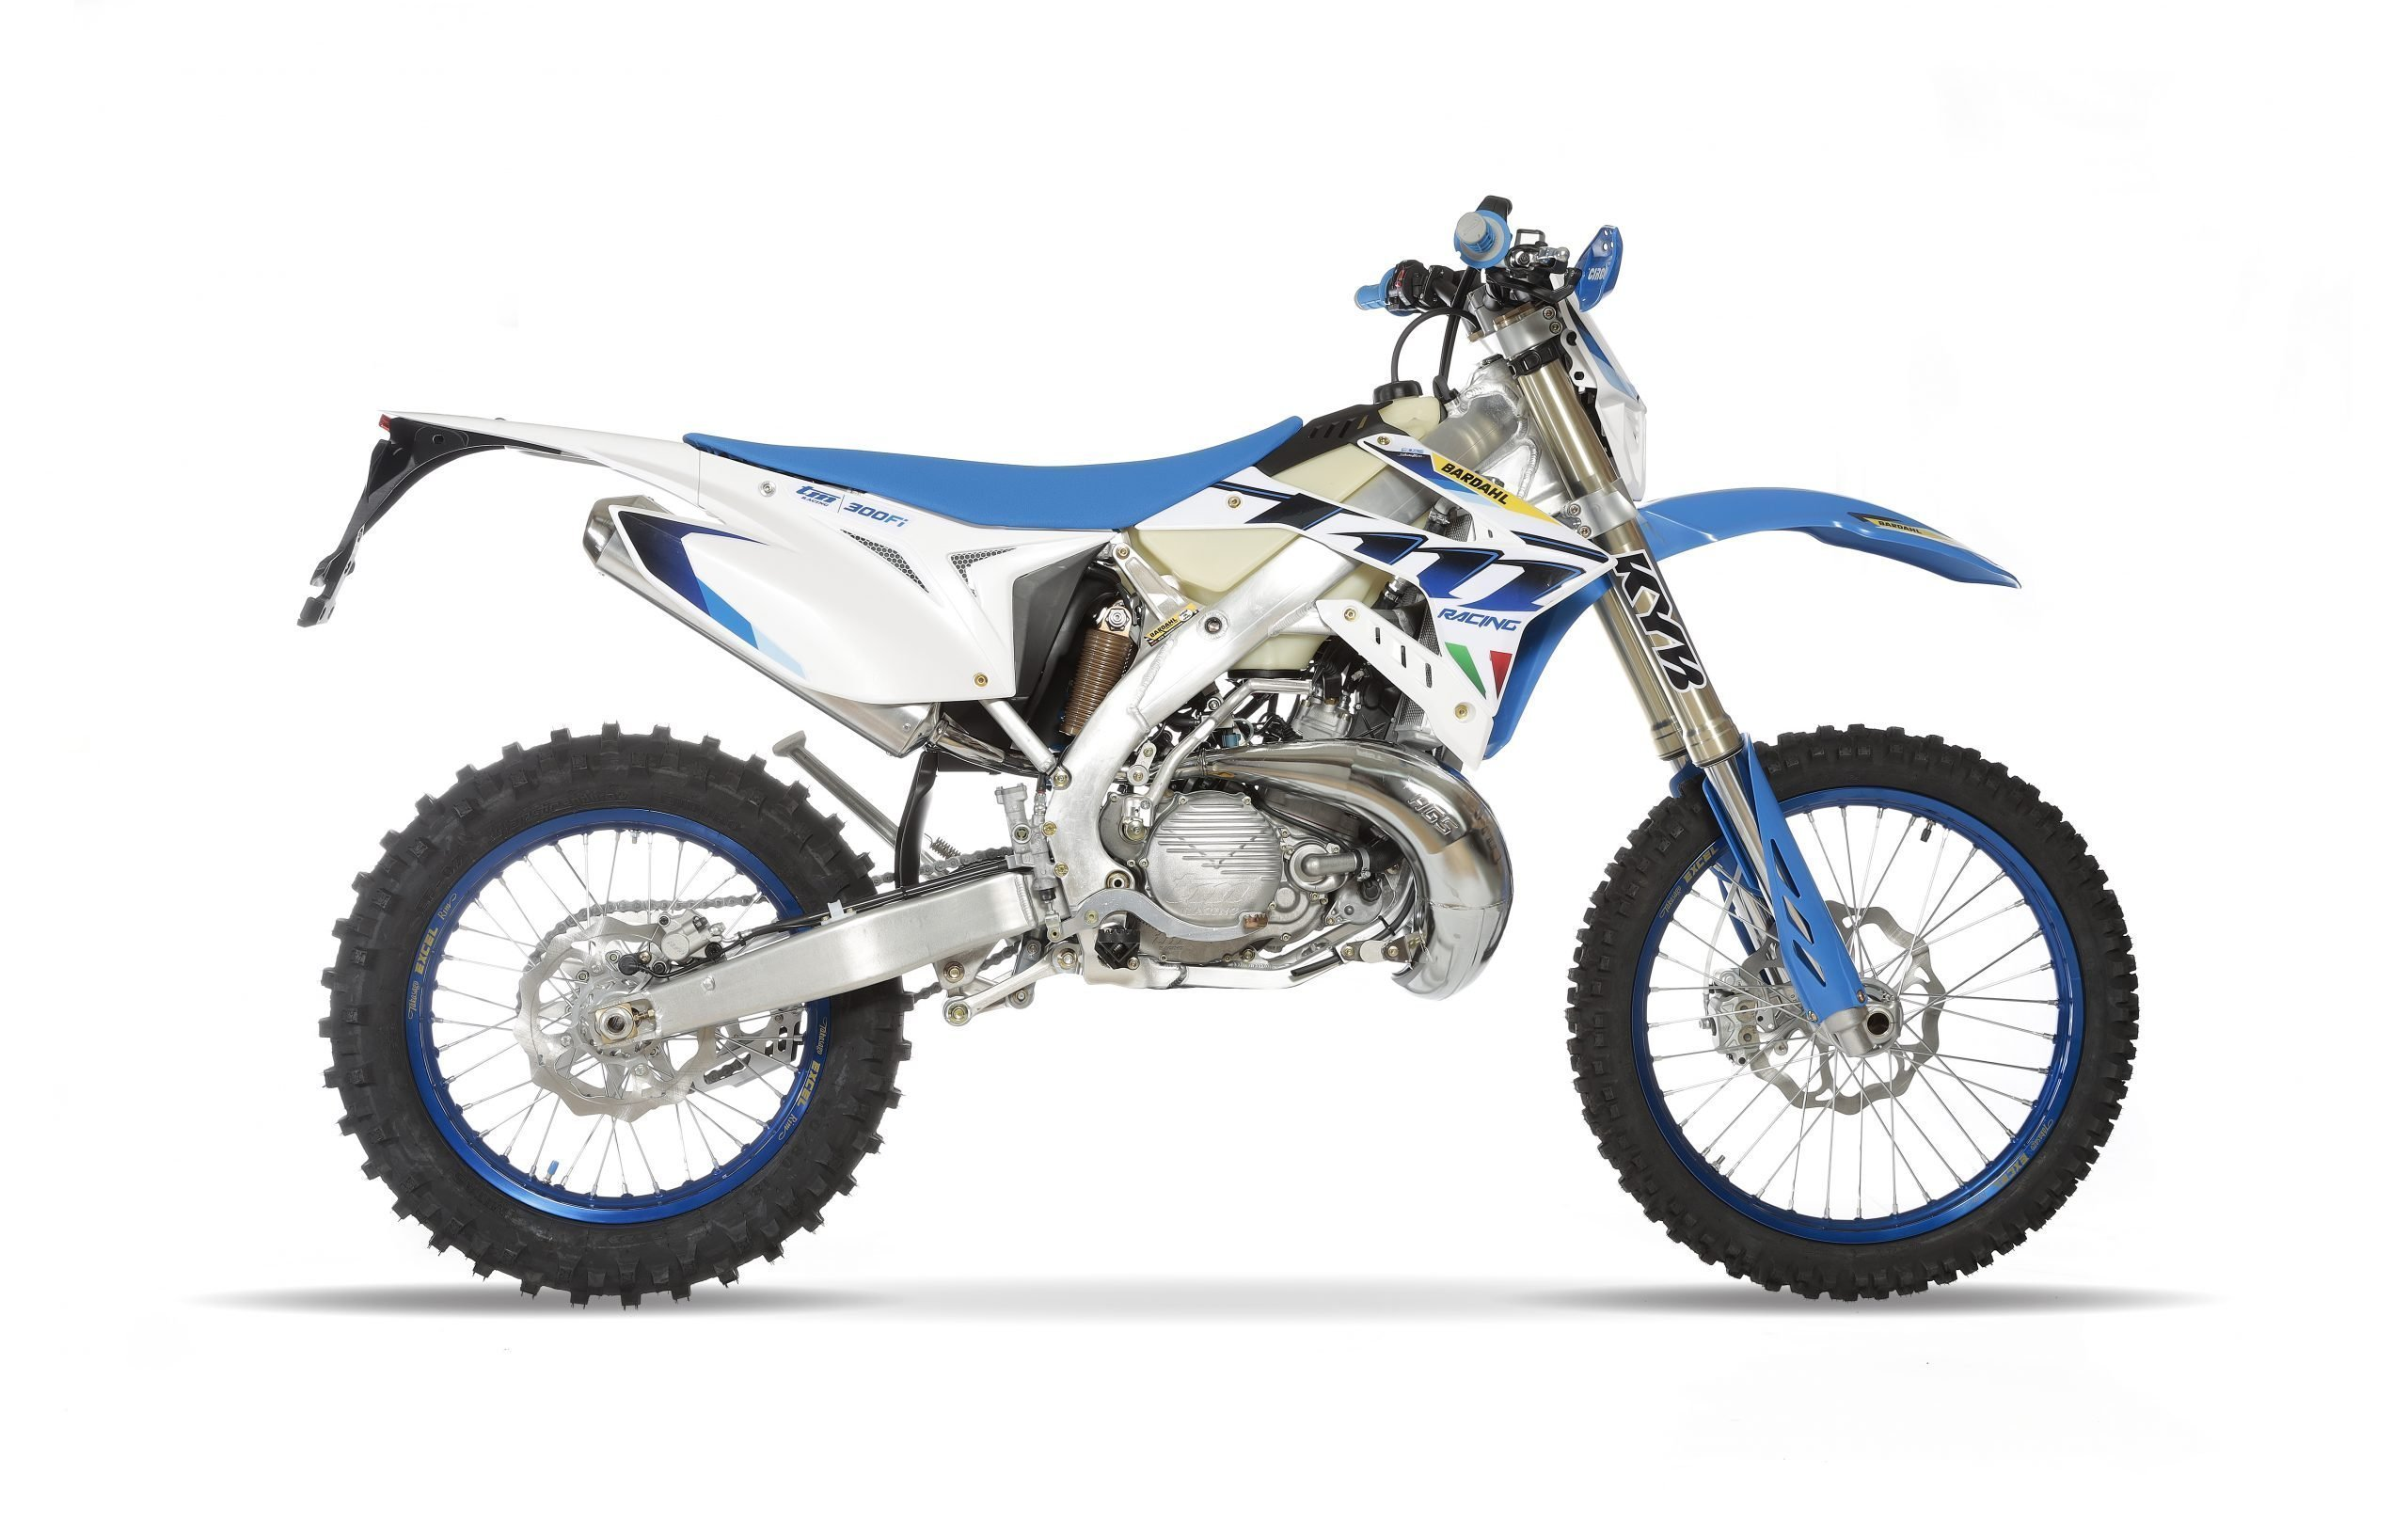 TM Racing 2021 Enduro 300 Fi ES